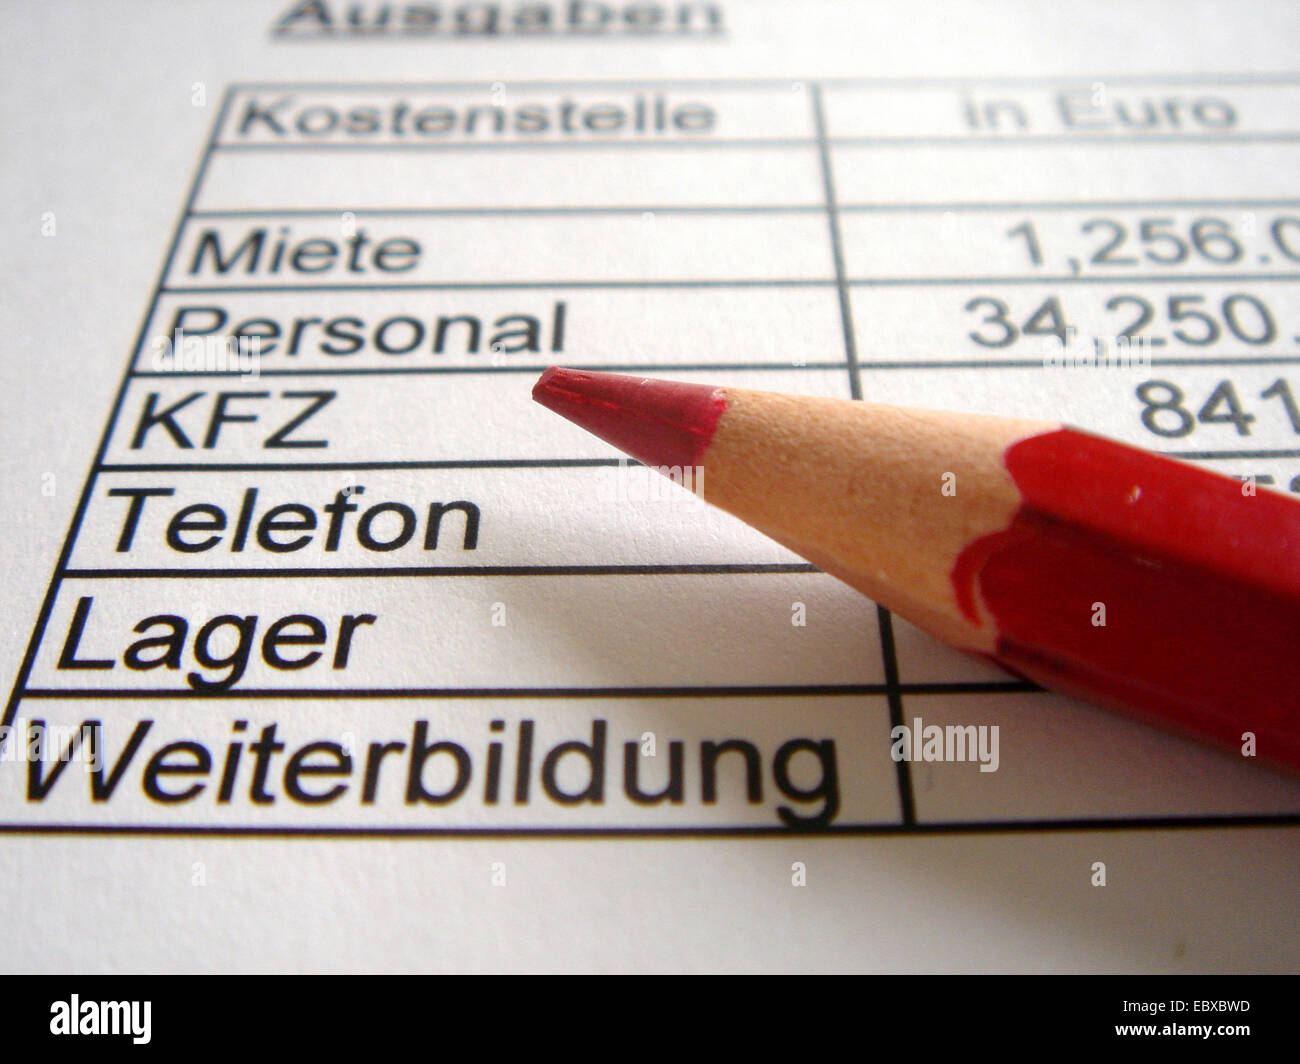 red pencil lying on a balance sheet of firm expenses - Stock Image